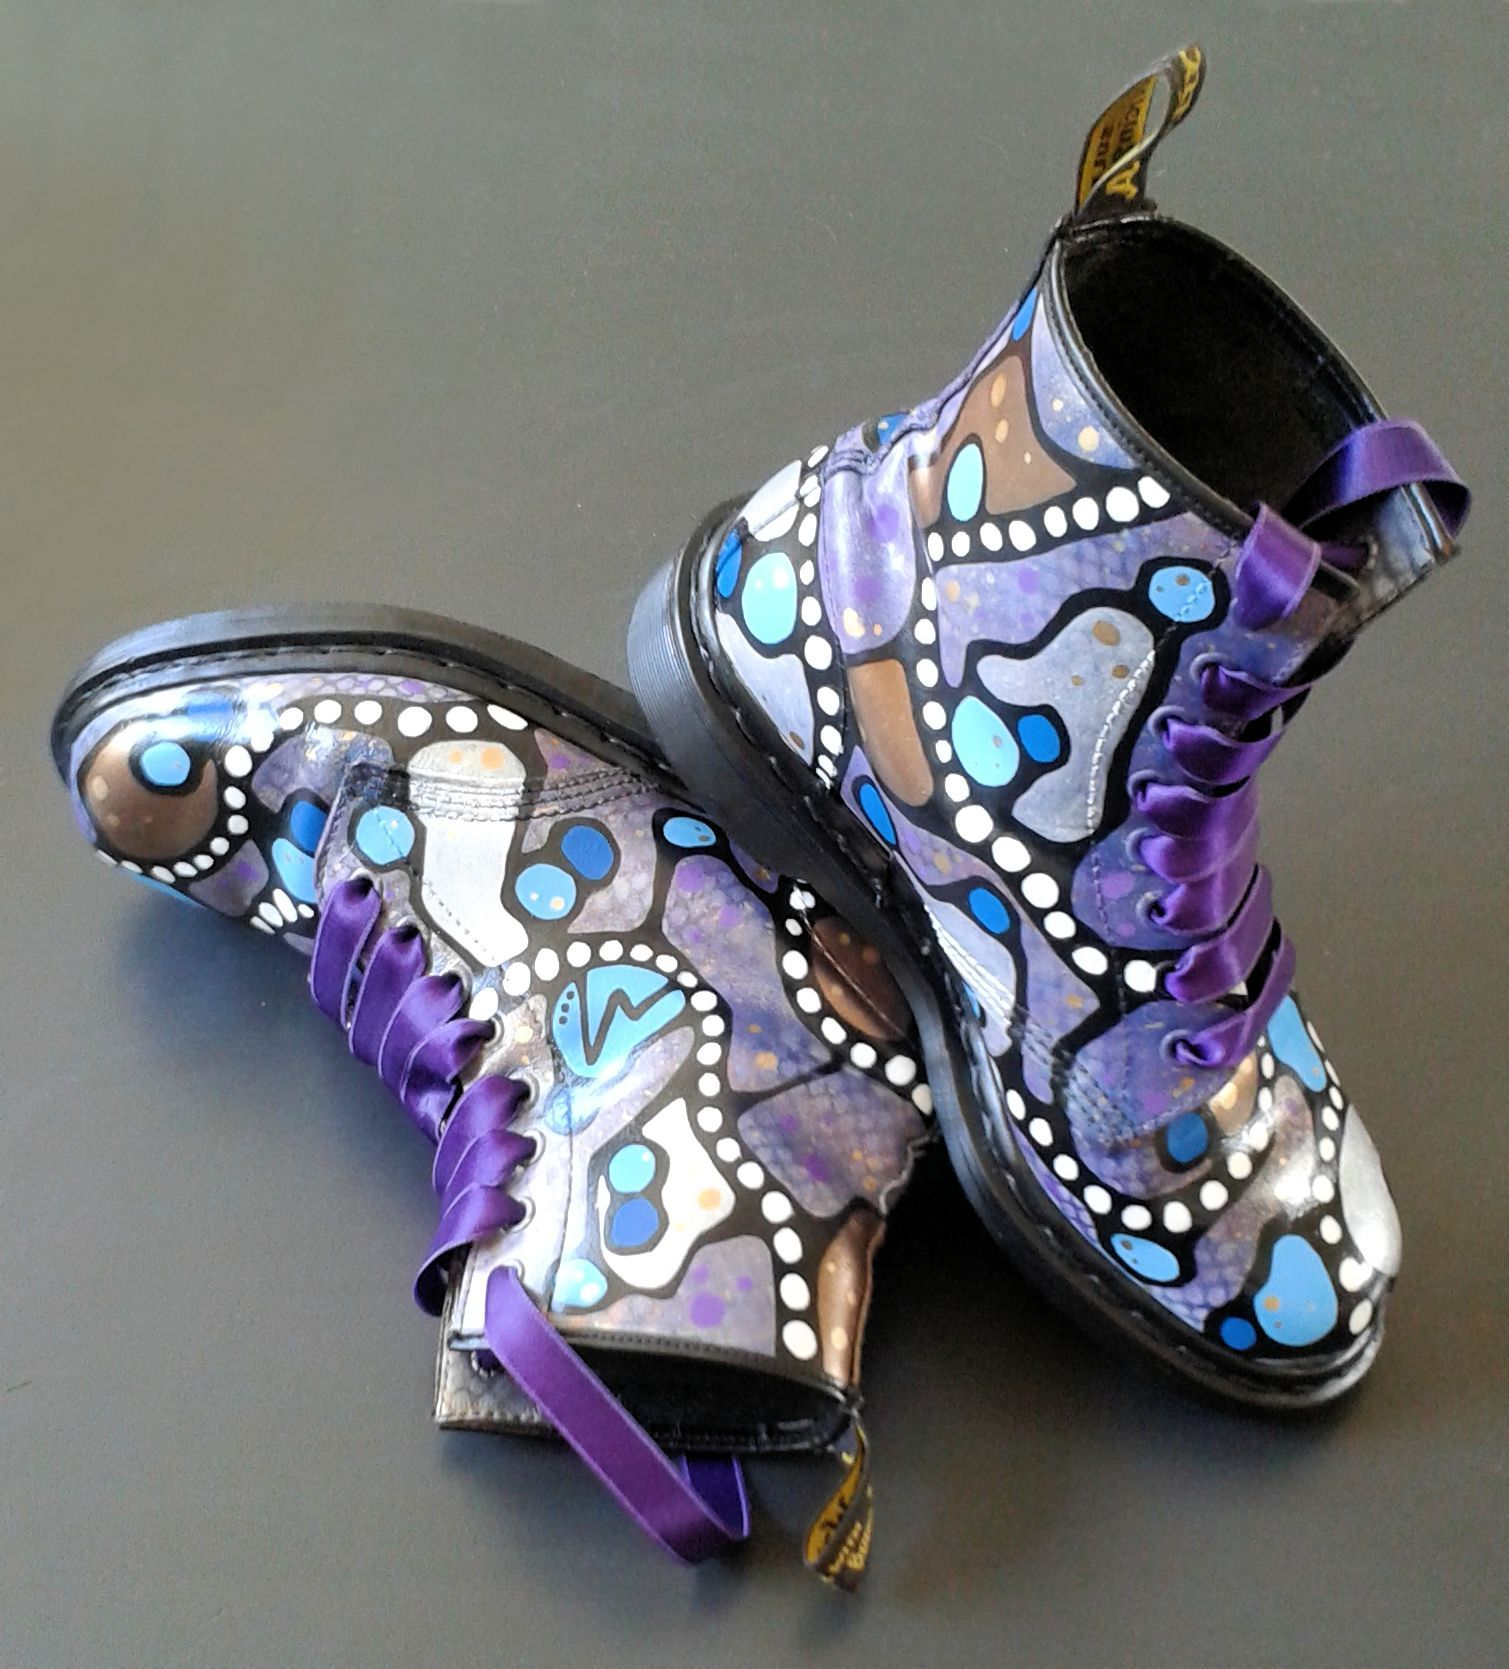 1438118788cda My latest project  Custom painted Dr. martens boots   Third pair. I  combined two passions of mine  painting designing   Doc Martens shoes !